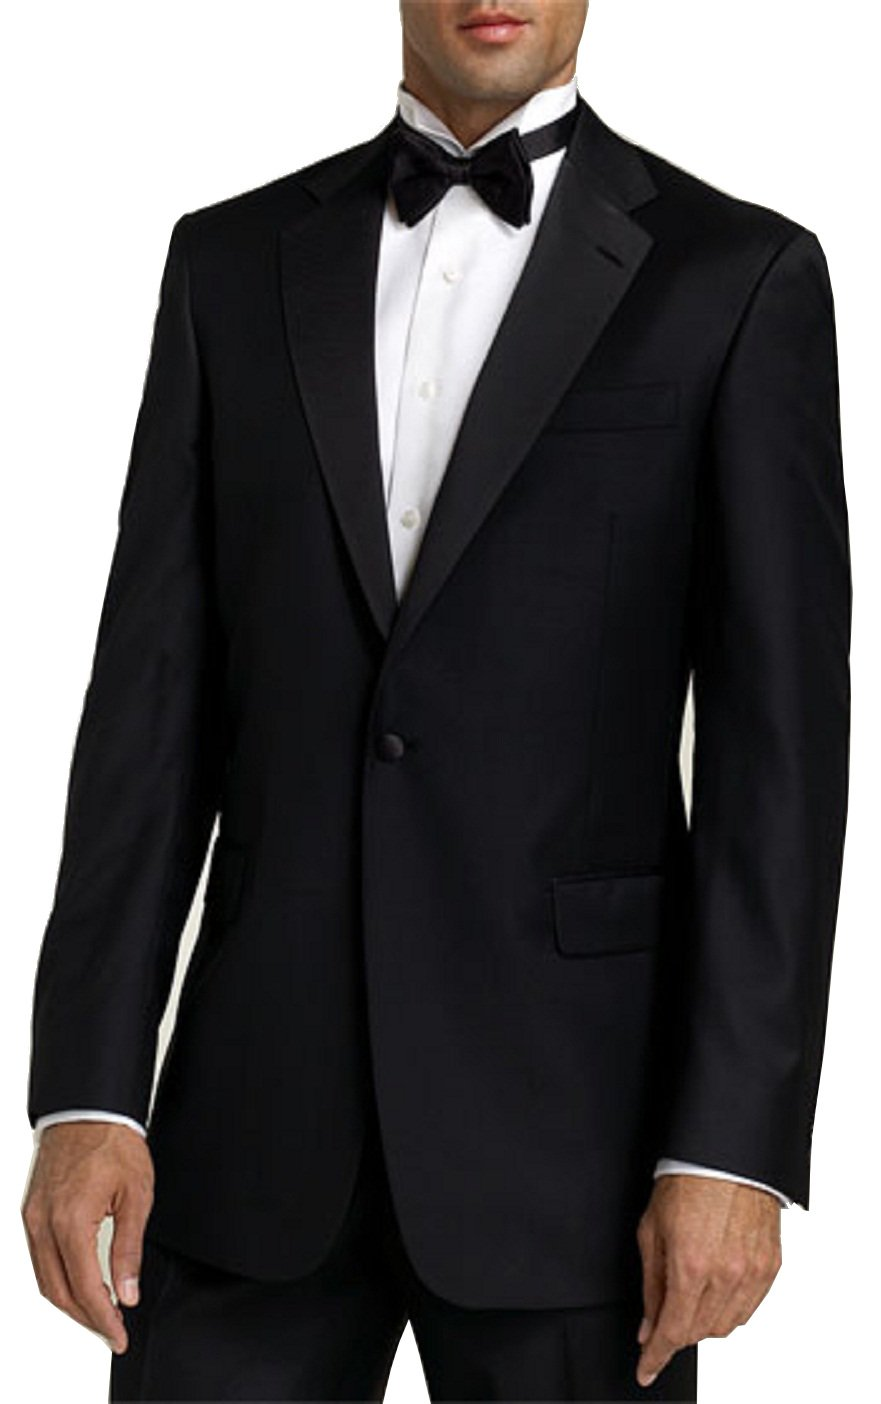 Neil Allyn Tuxedo with Pleated Front, Adjustable Waist Pants - 40L Black by Neil Allyn